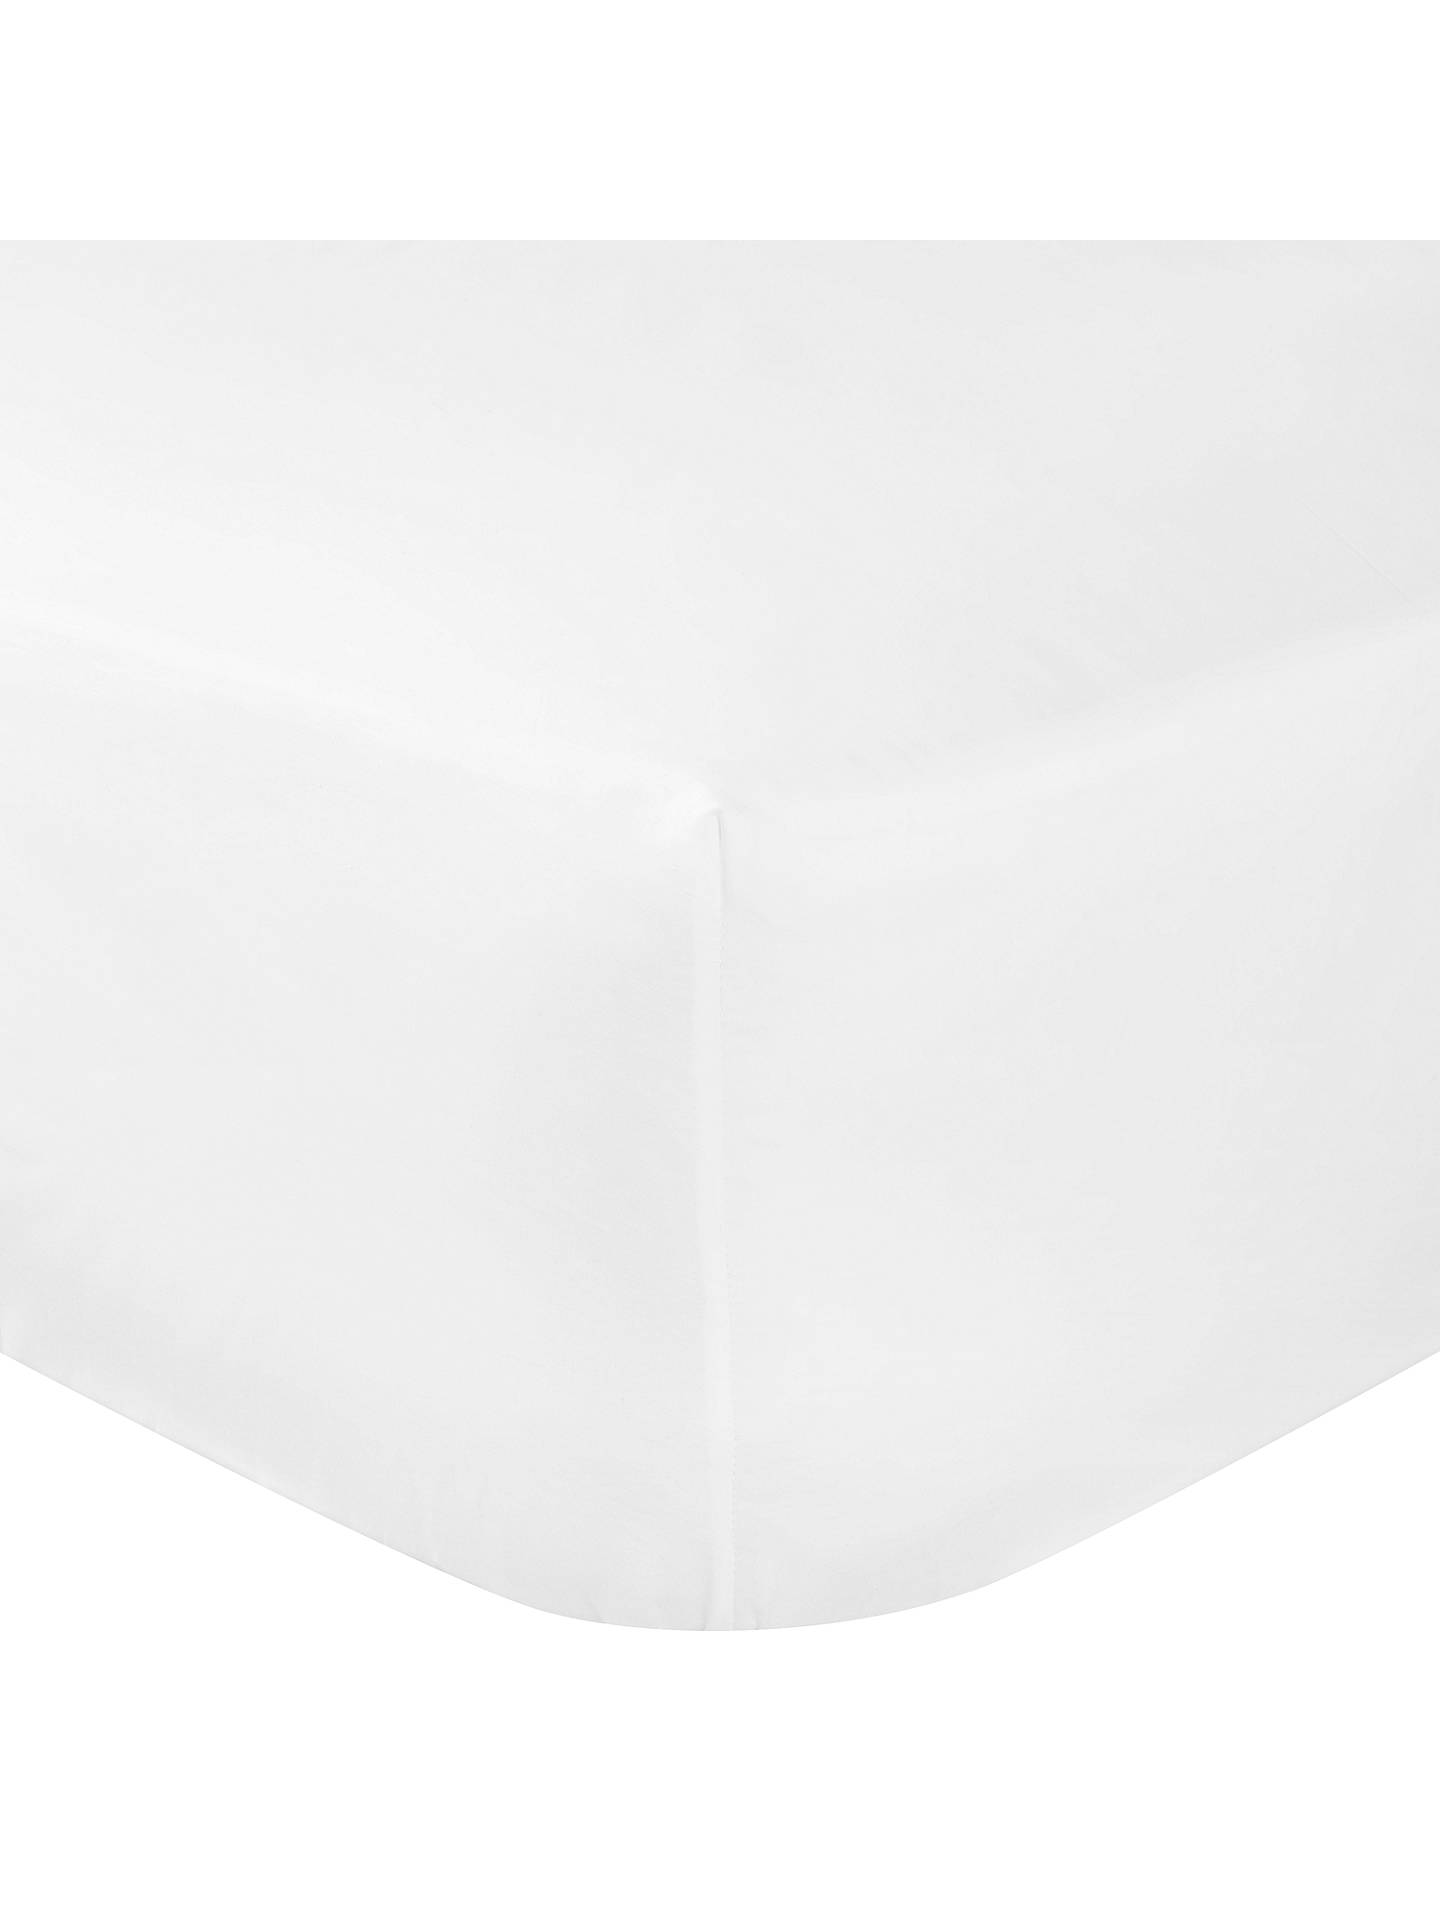 Buy John Lewis & Partners Crisp & Fresh Egyptian Cotton 800 Thread Count Deep Fitted Sheet, Single, White Online at johnlewis.com